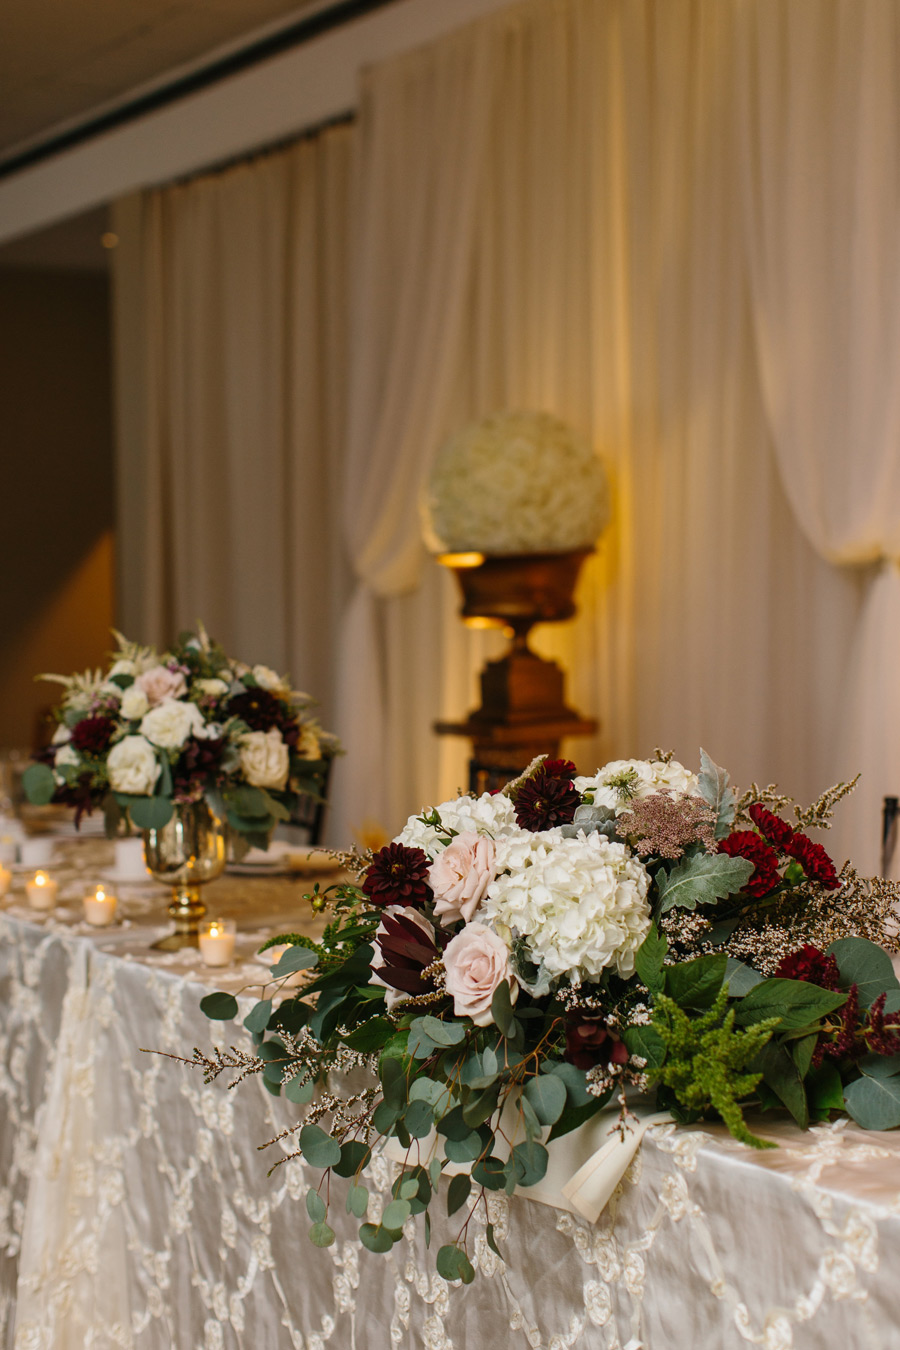 Stephen-Michlyn-Reception-Details-0074